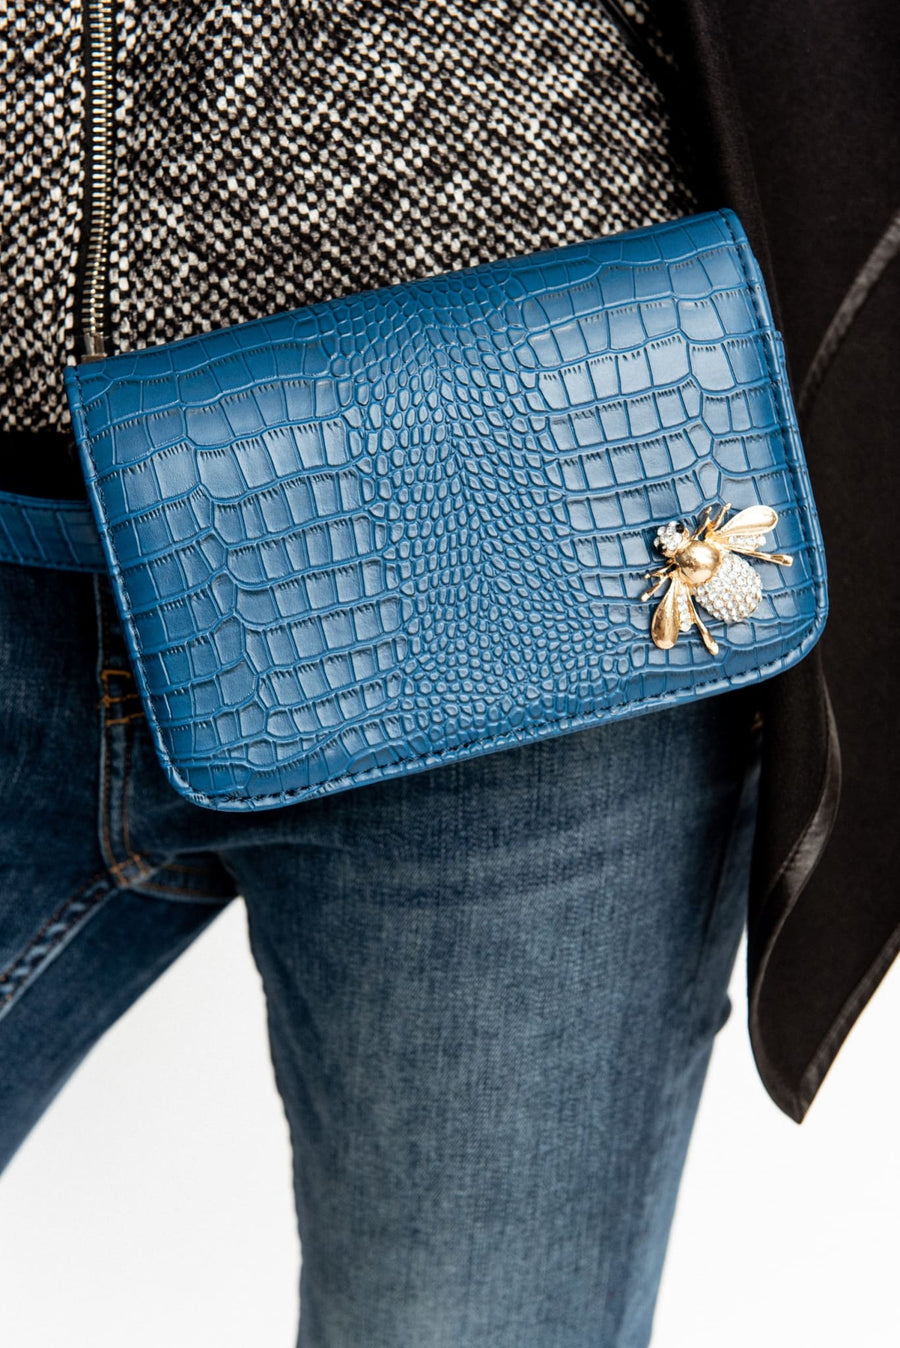 Teal Croc Embossed Embellished Leather Belt With Fanny Bag - Purse